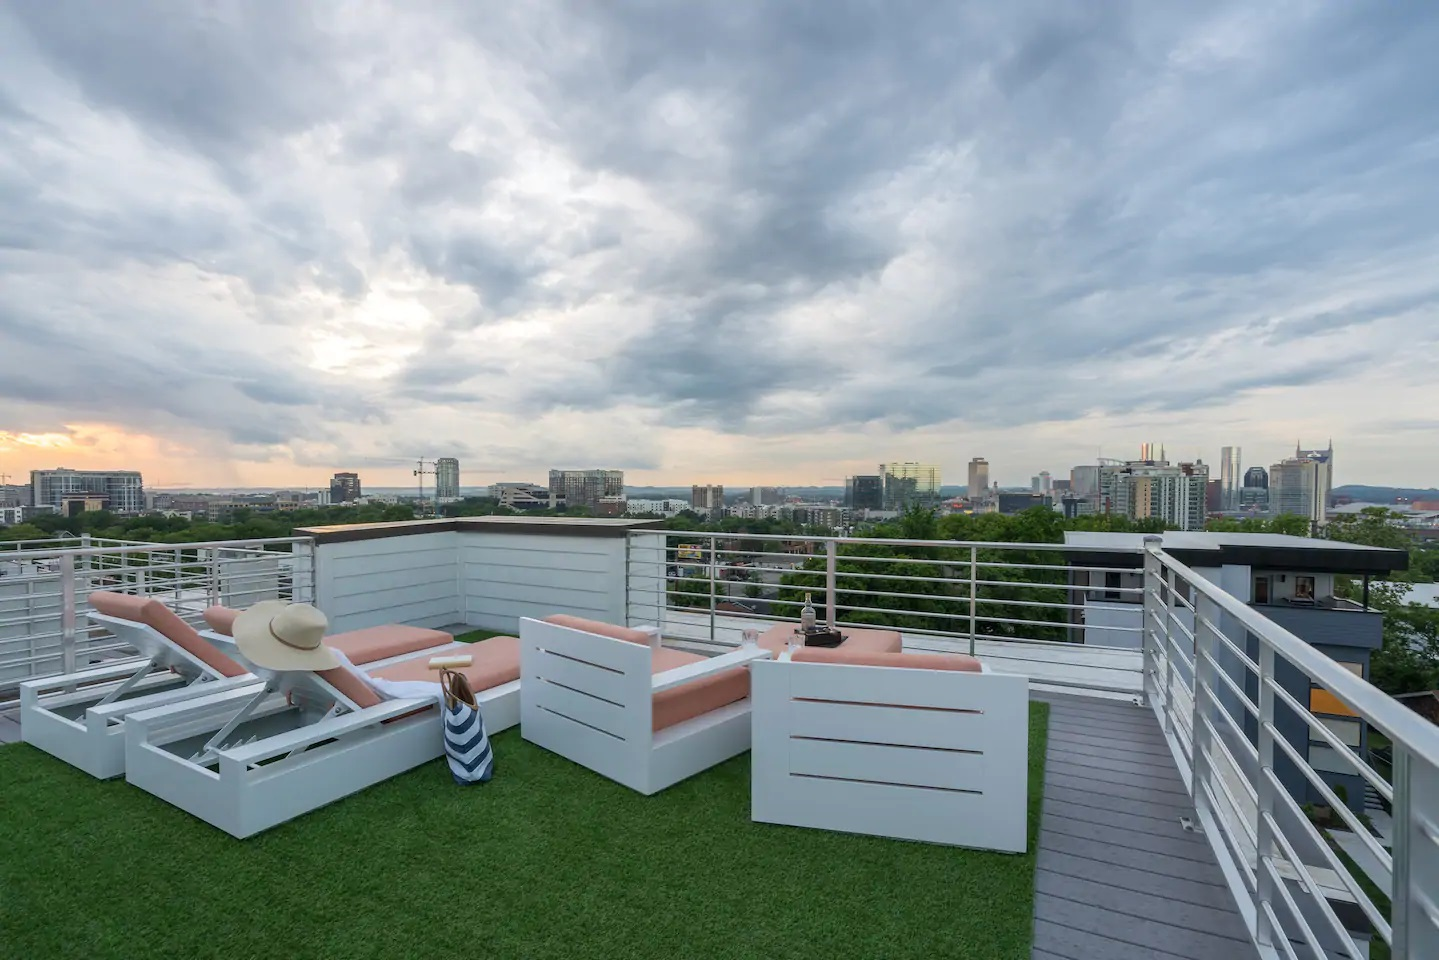 Photo of the rooftop living space at an Airbnb in Nashville.